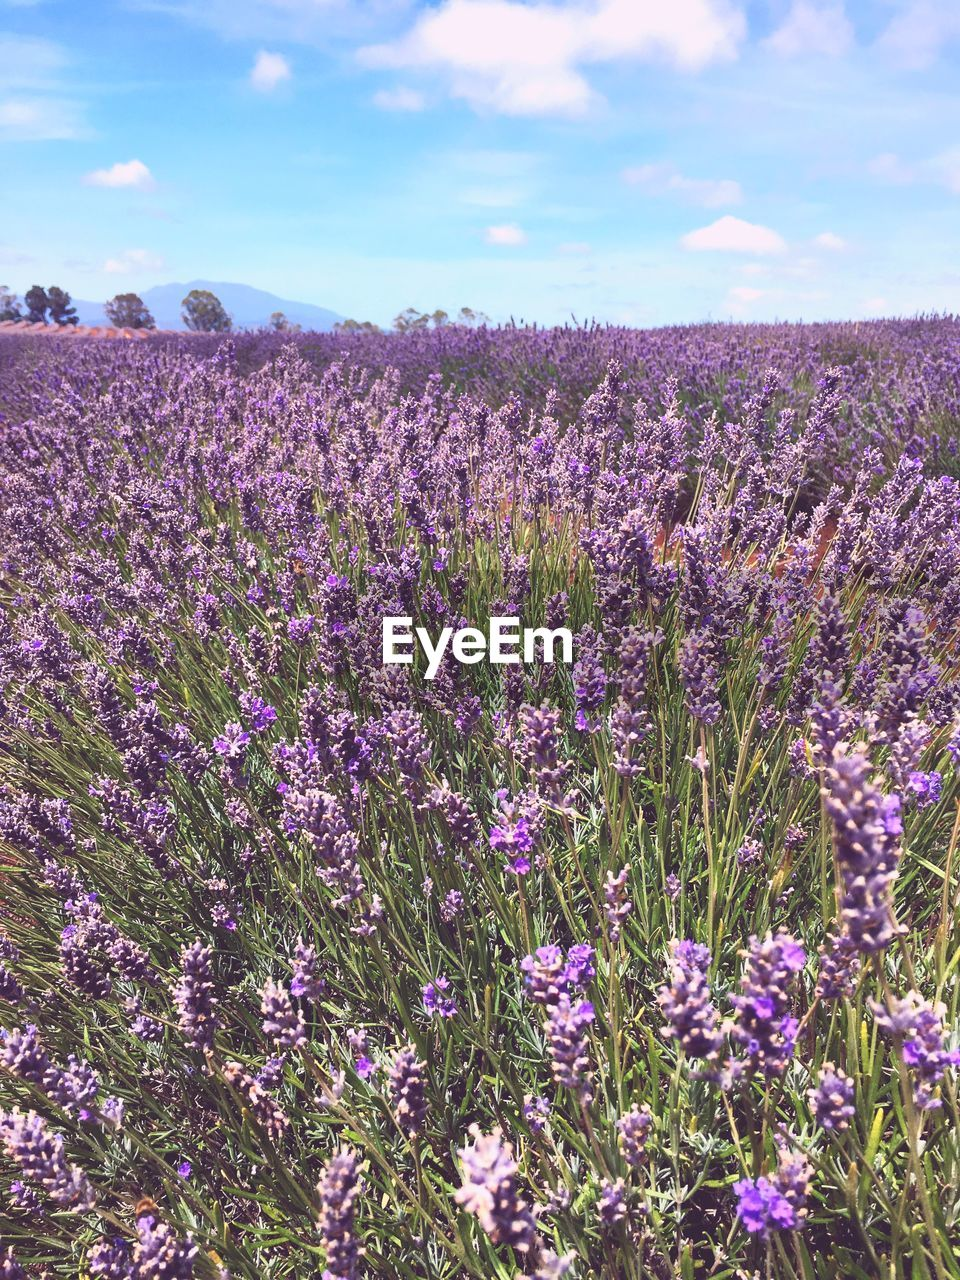 flower, flowering plant, beauty in nature, land, field, growth, plant, vulnerability, sky, fragility, freshness, purple, landscape, tranquility, scenics - nature, tranquil scene, nature, lavender, environment, day, no people, outdoors, flowerbed